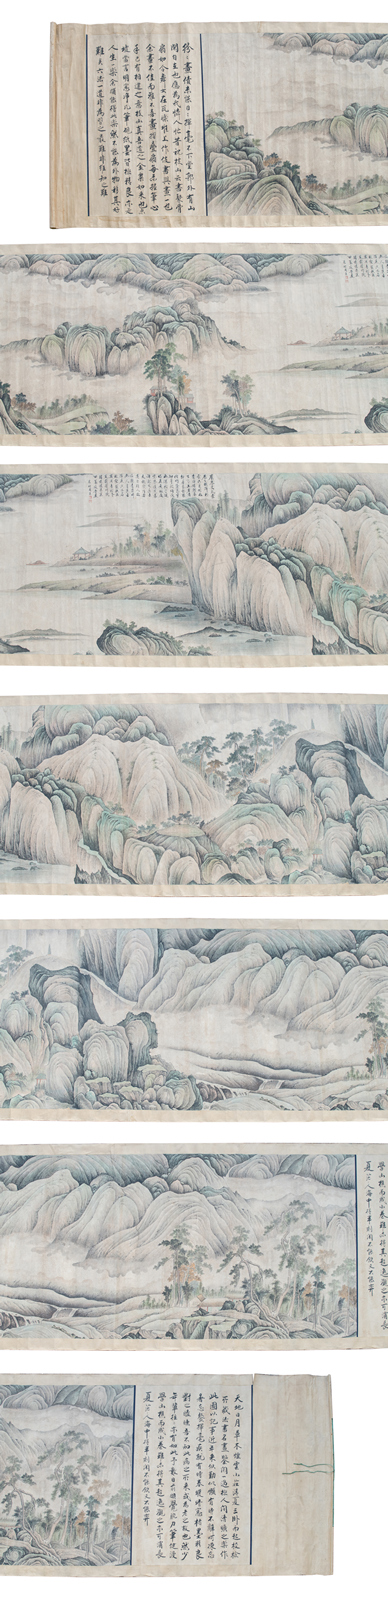 An exceptional Chinese scroll depicting a fishing boat, pagodas and pavillions in a vast mountainous river landscape, with calligraphic texts, signed, ink and watercolour on paper on textile, 142 x 1250 ( without mount) - 160 x 1335 cm (with mount)